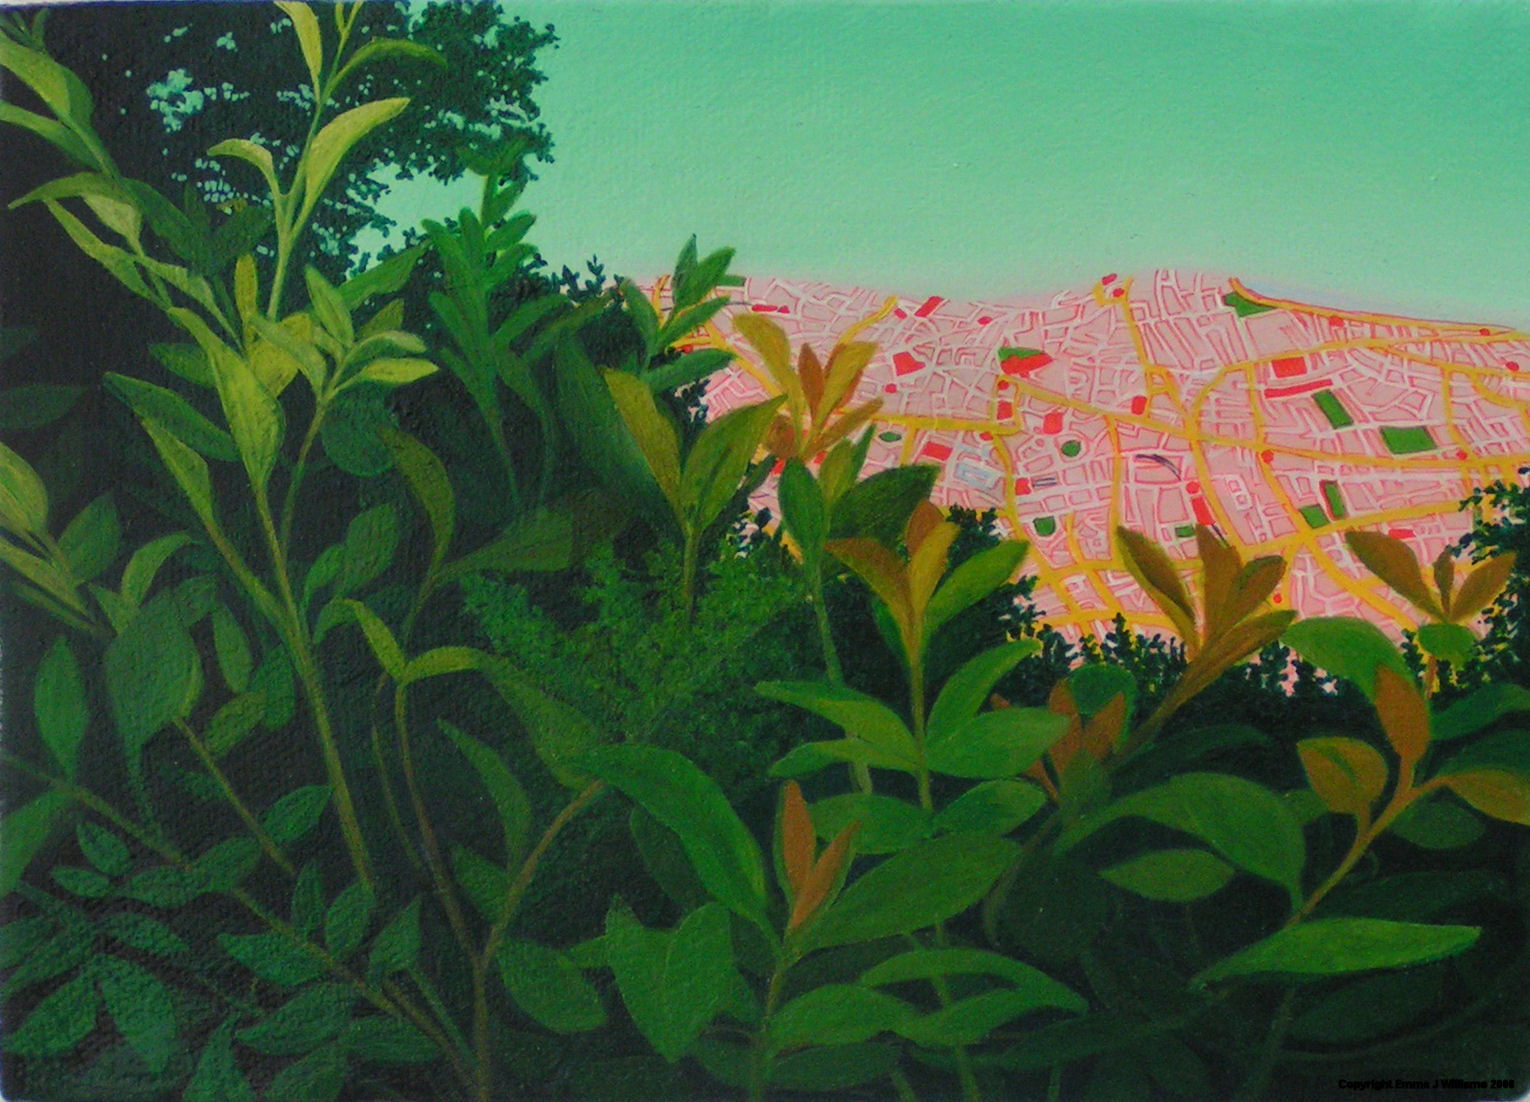 Emma J Williams ' Pink City through trees' ii 2005 oil on canvas